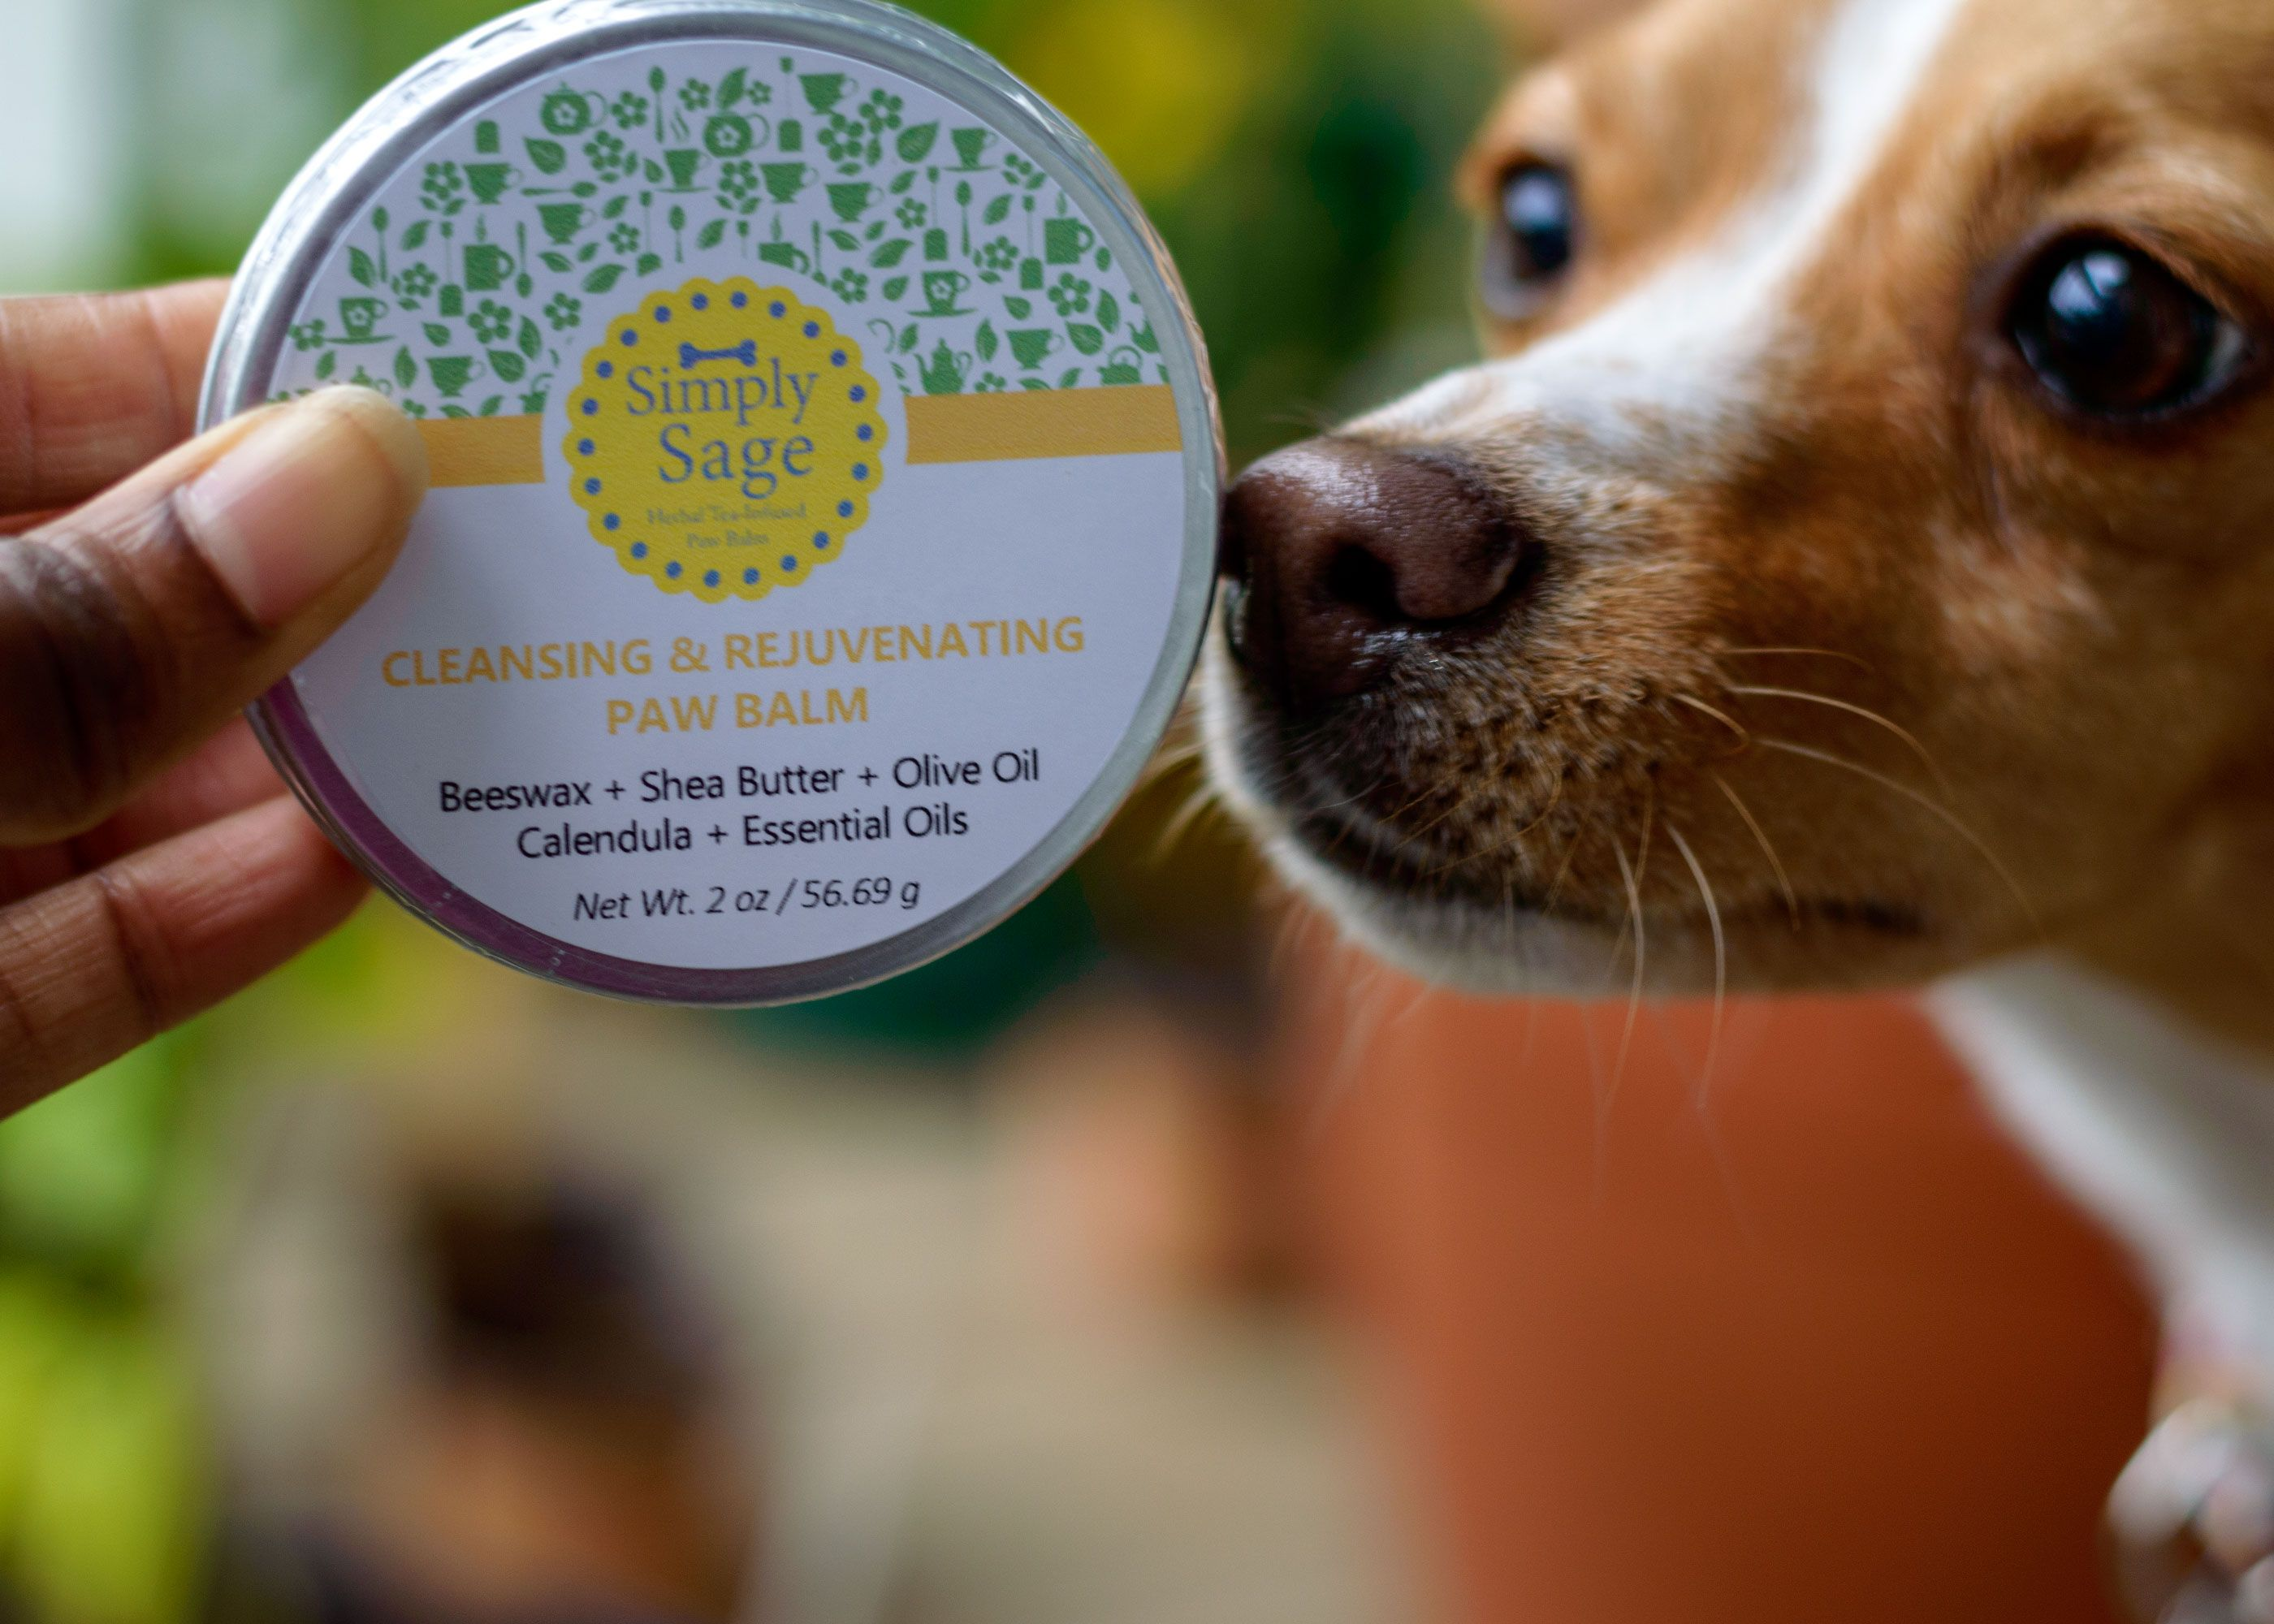 A little paw balm every other day will keep the cracks